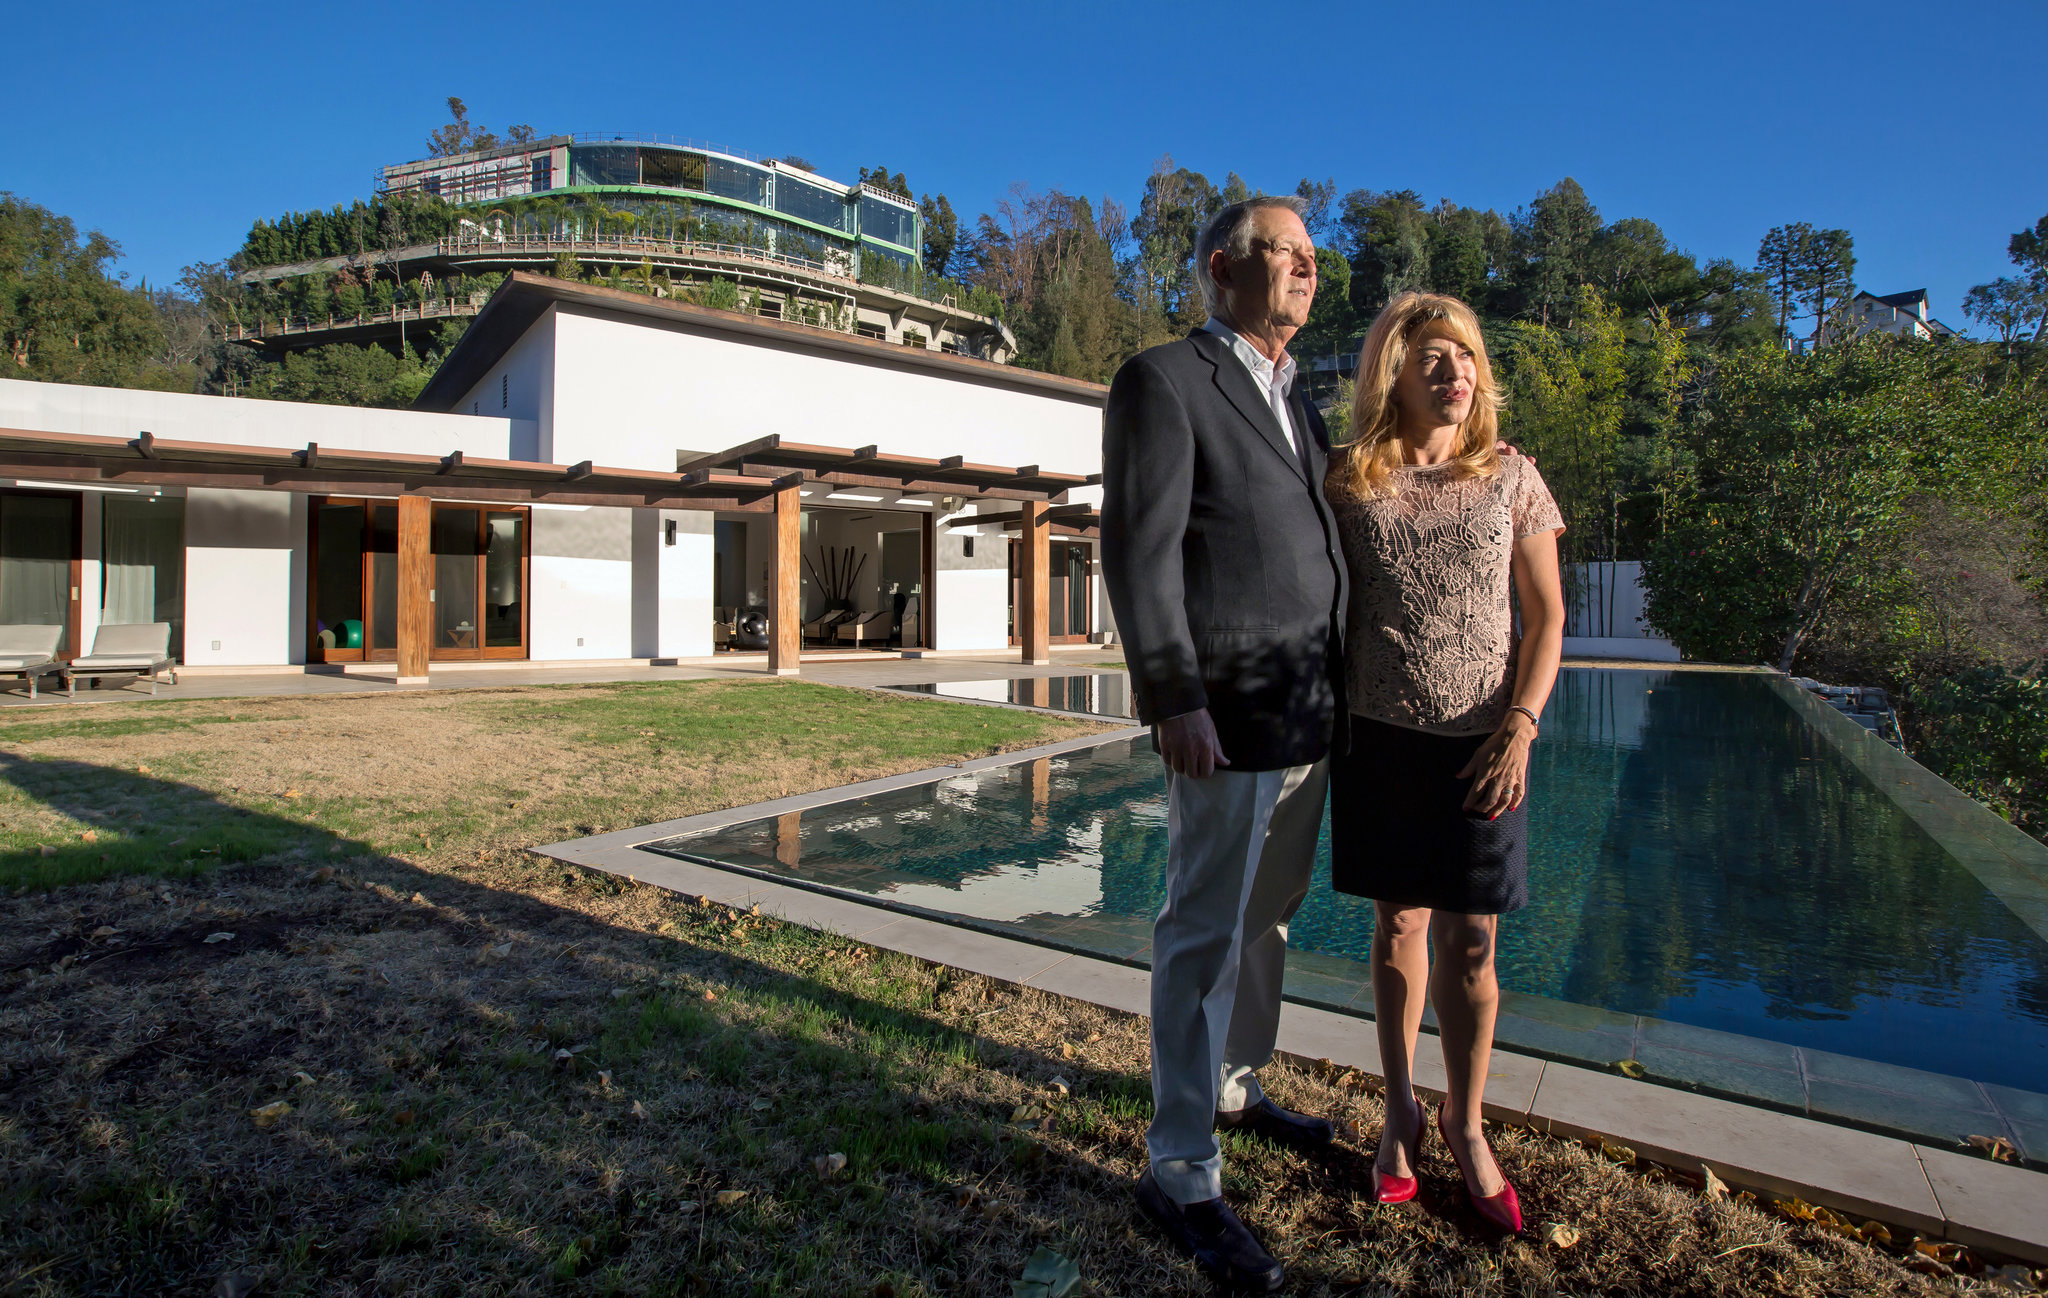 Douglas Huizen A Mansion, A Shell Company And Resentment In Bel Air - The